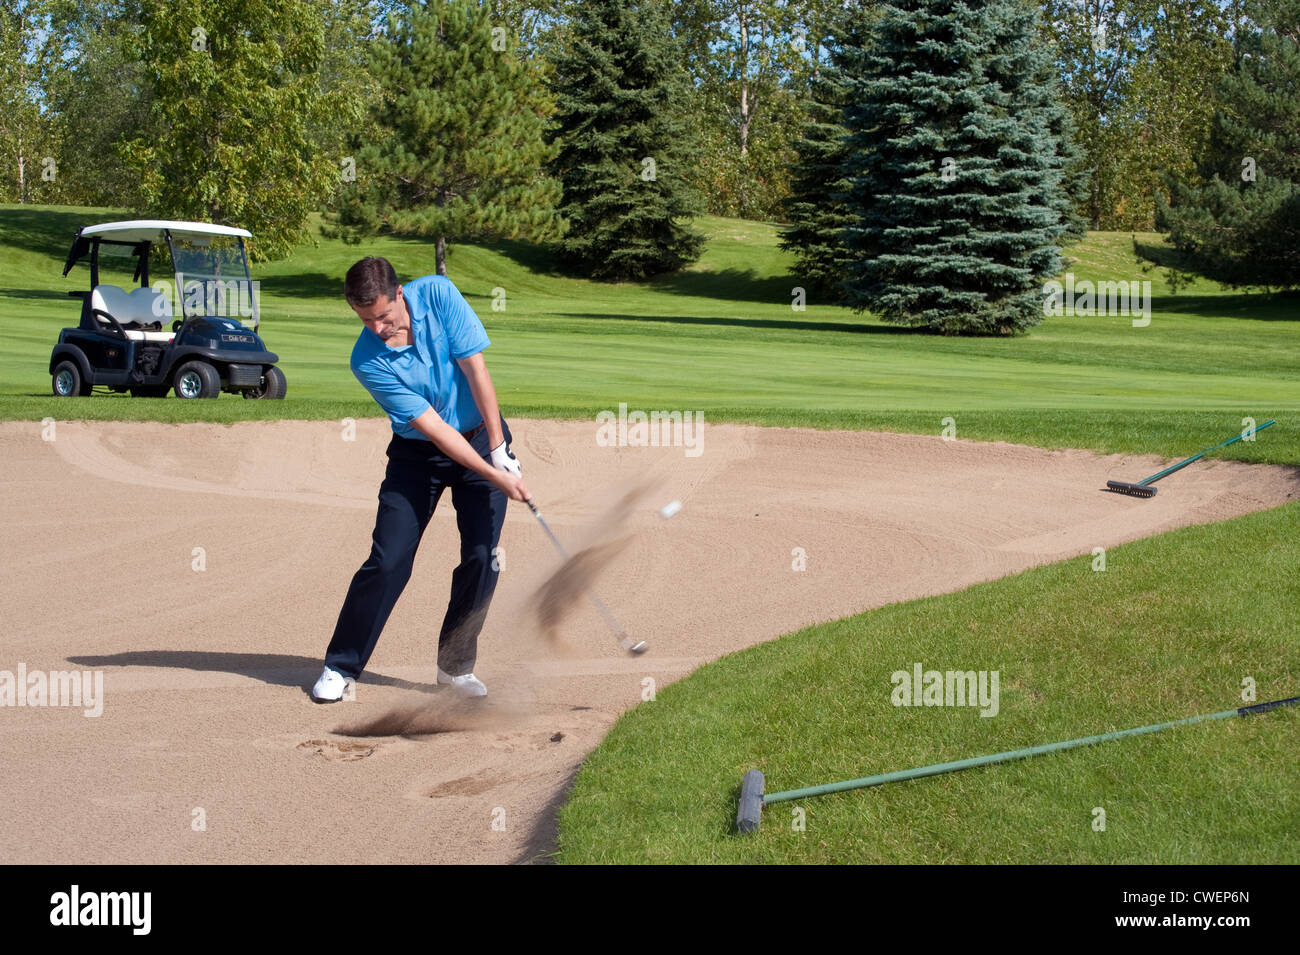 Golfer blasting out of sand trap. - Stock Image